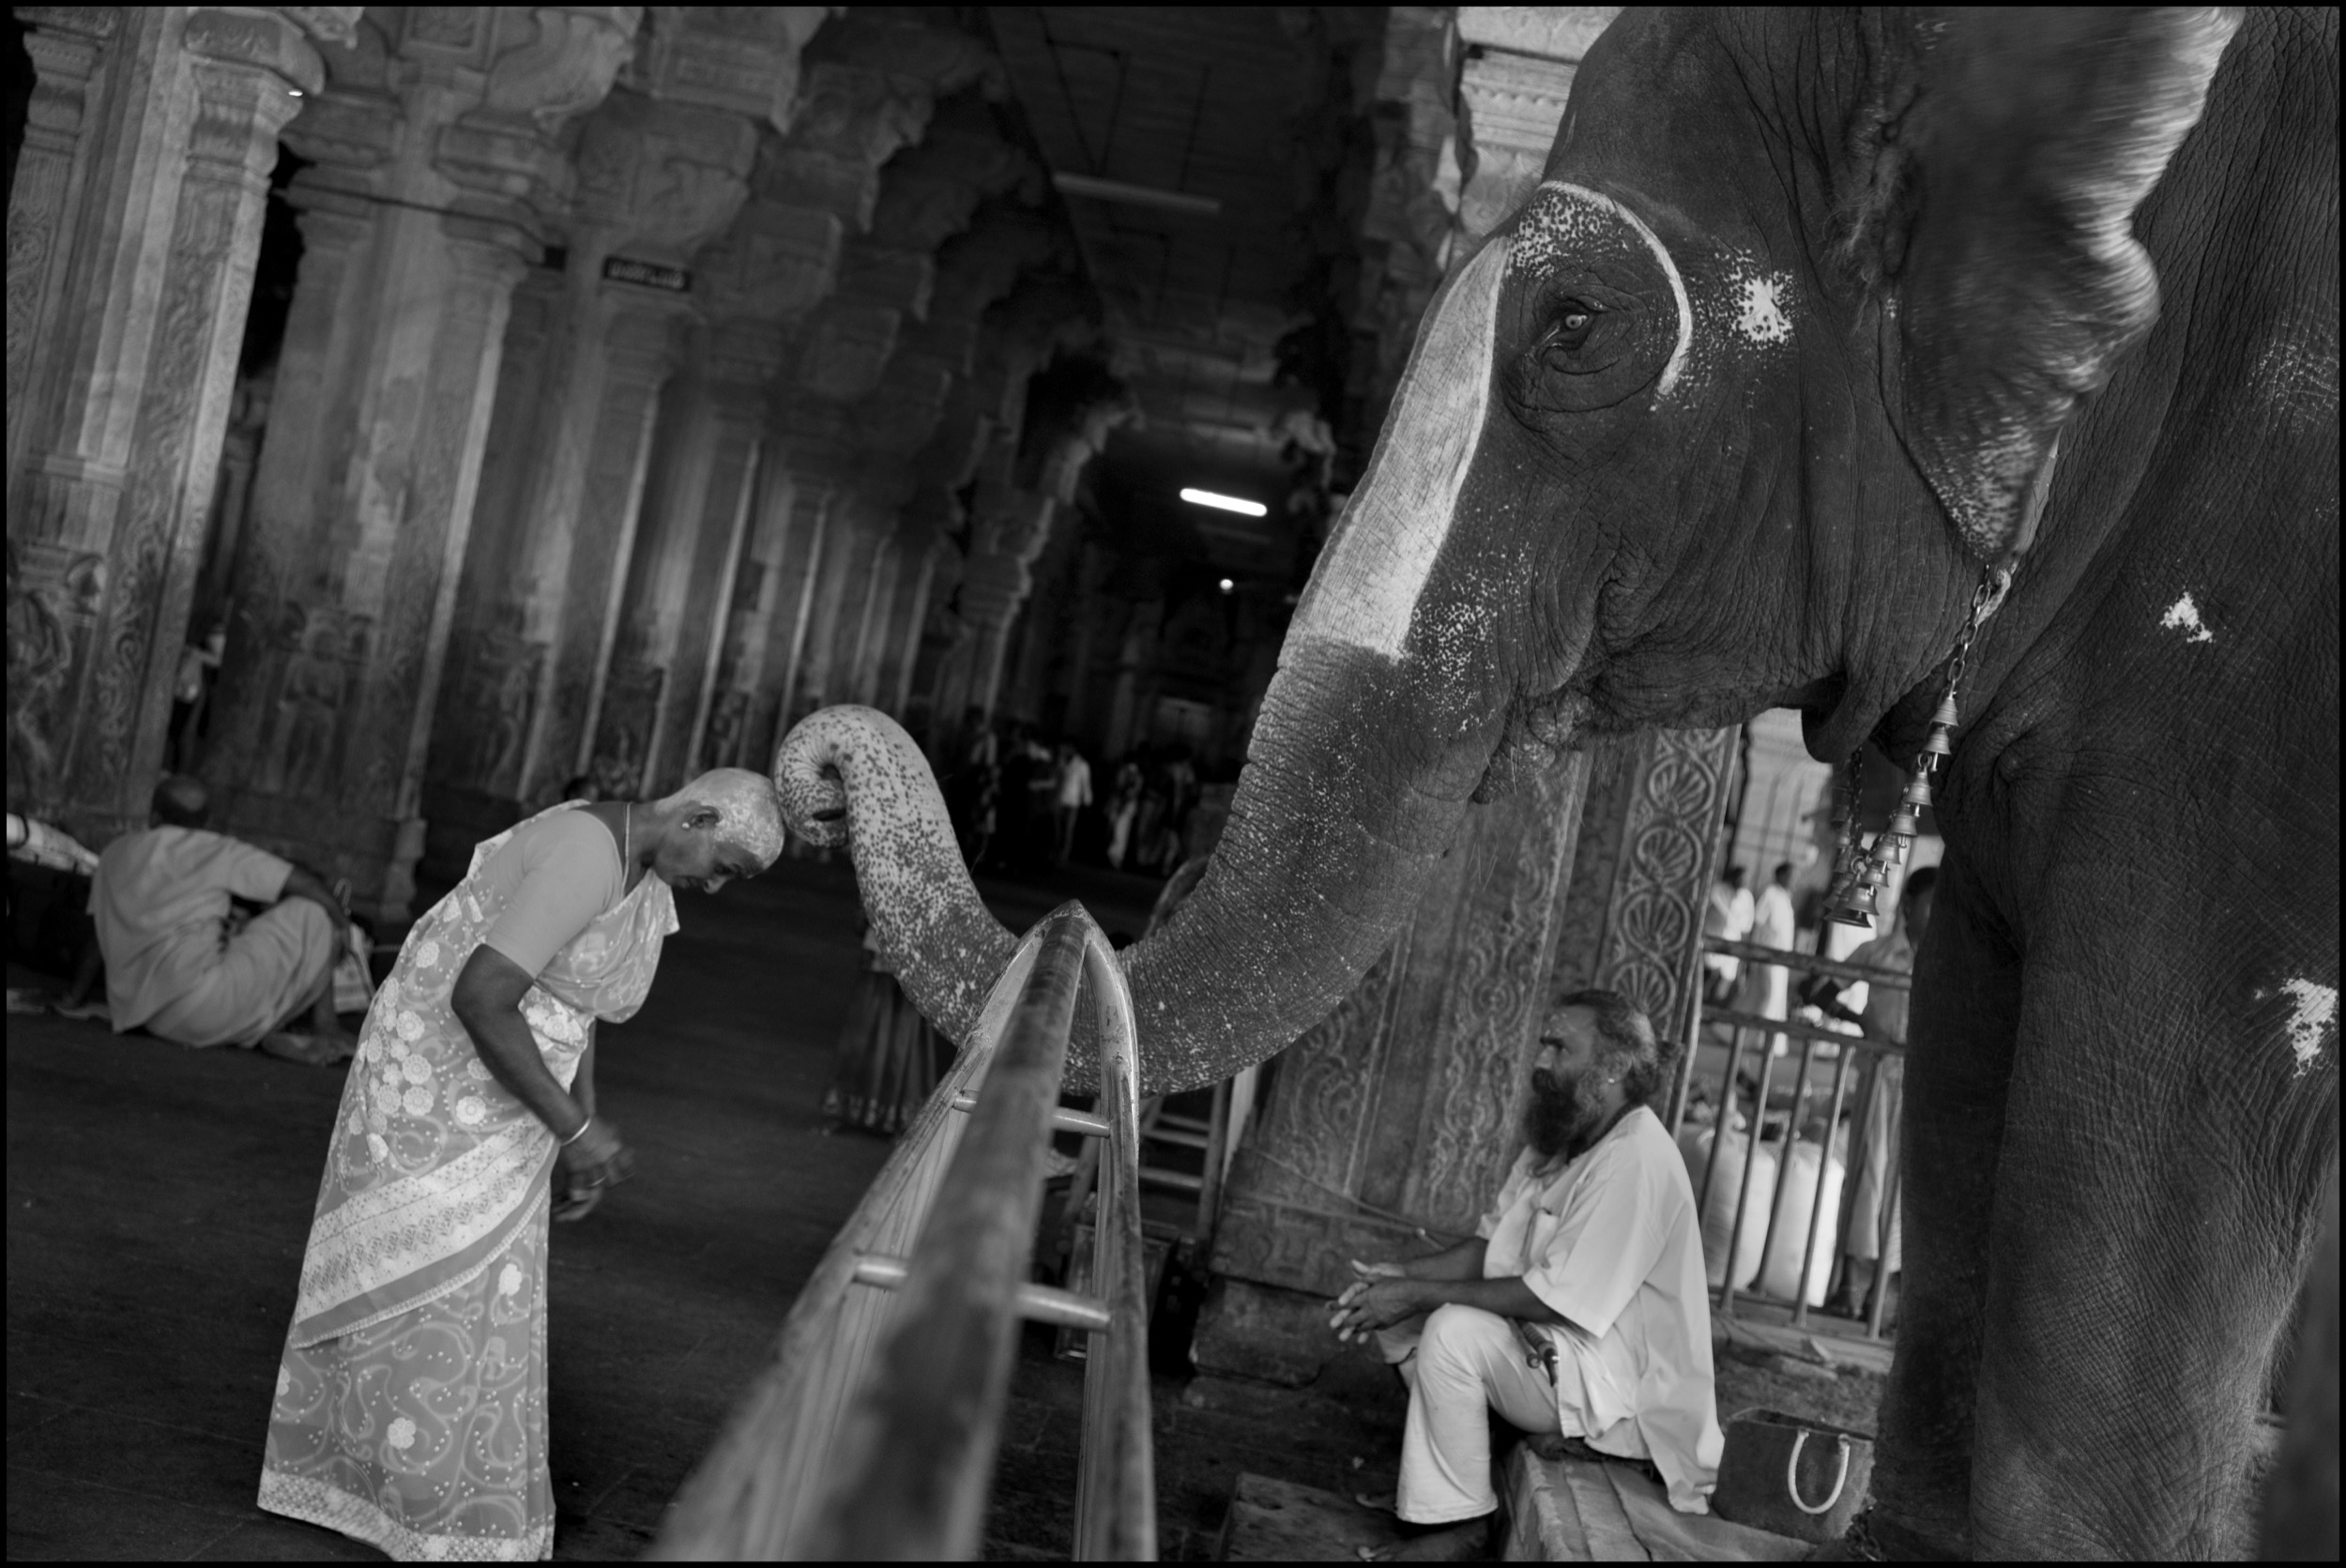 At the Sri Ranganathaswamy temple, an elephant blesses a pilgrim with its trunk after receiving a cash donation. The pilgrim has offered her hair to a resident deity, and her shaved head is covered with tumeric paste for protection; Tiruchirapalli (Trichy), India.